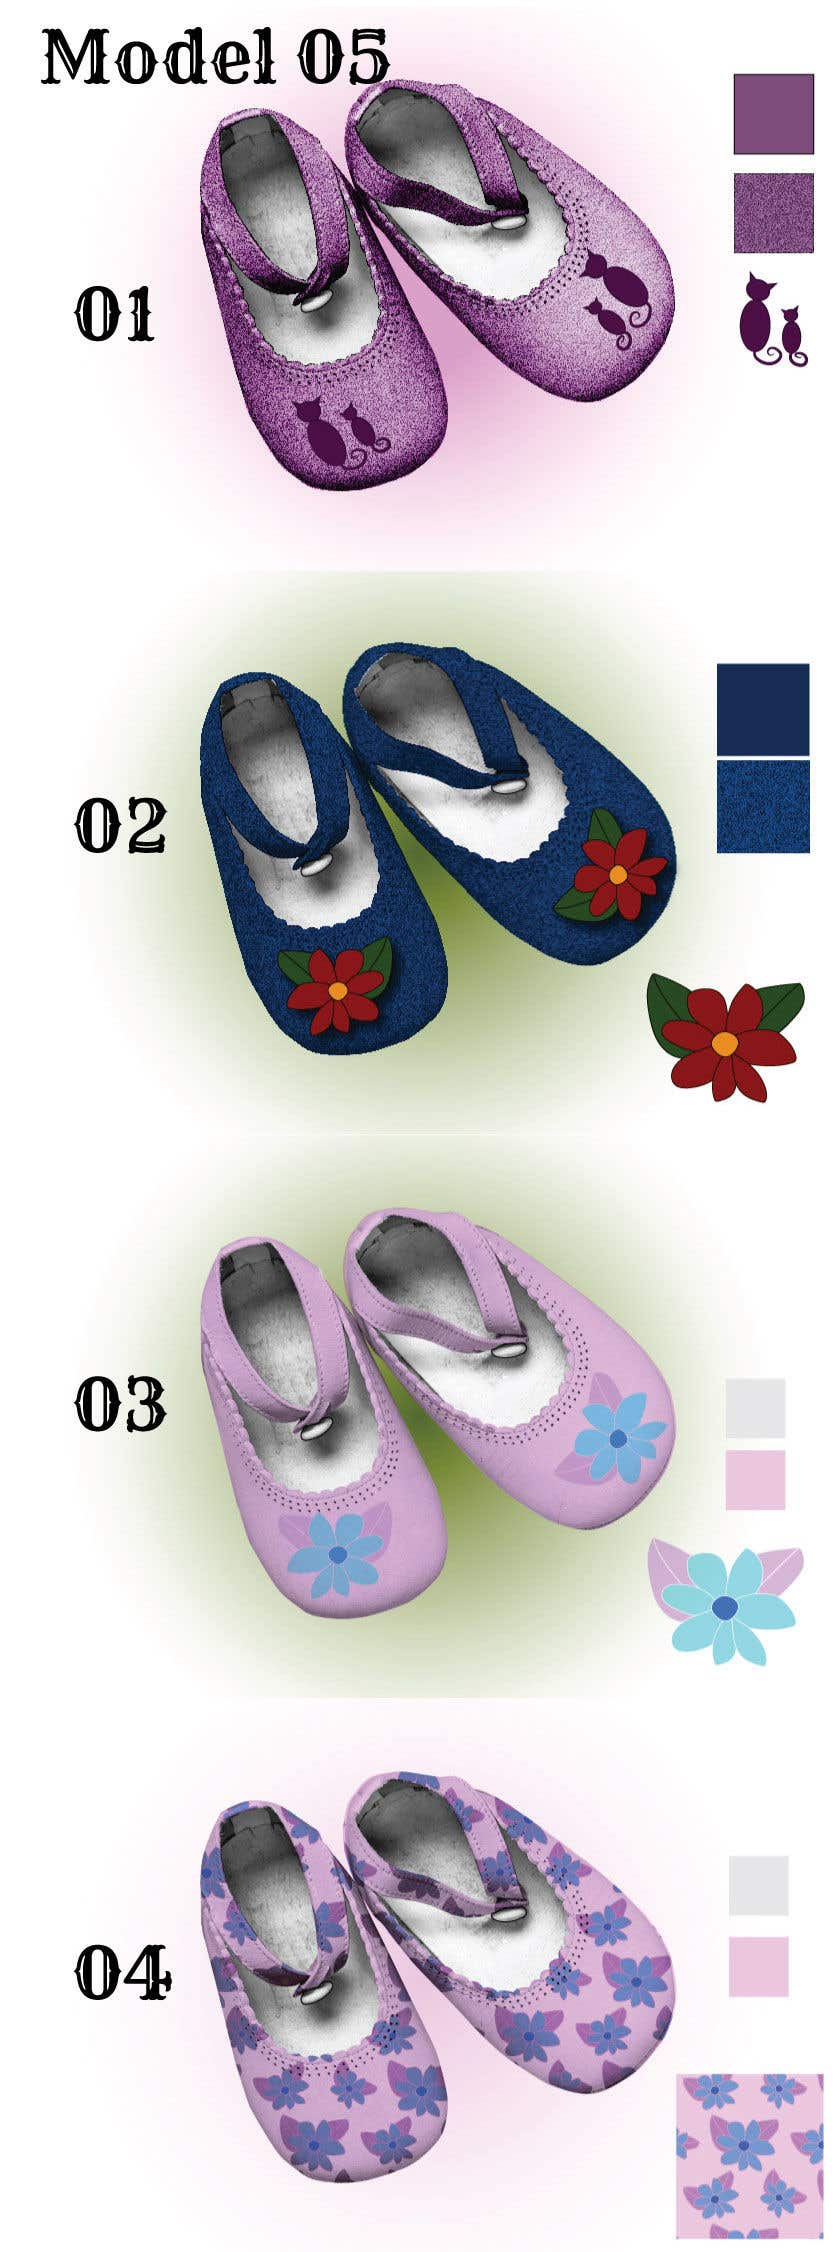 Contest Entry #                                        16                                      for                                         New Shoes design for Kids - Design 3-4 models